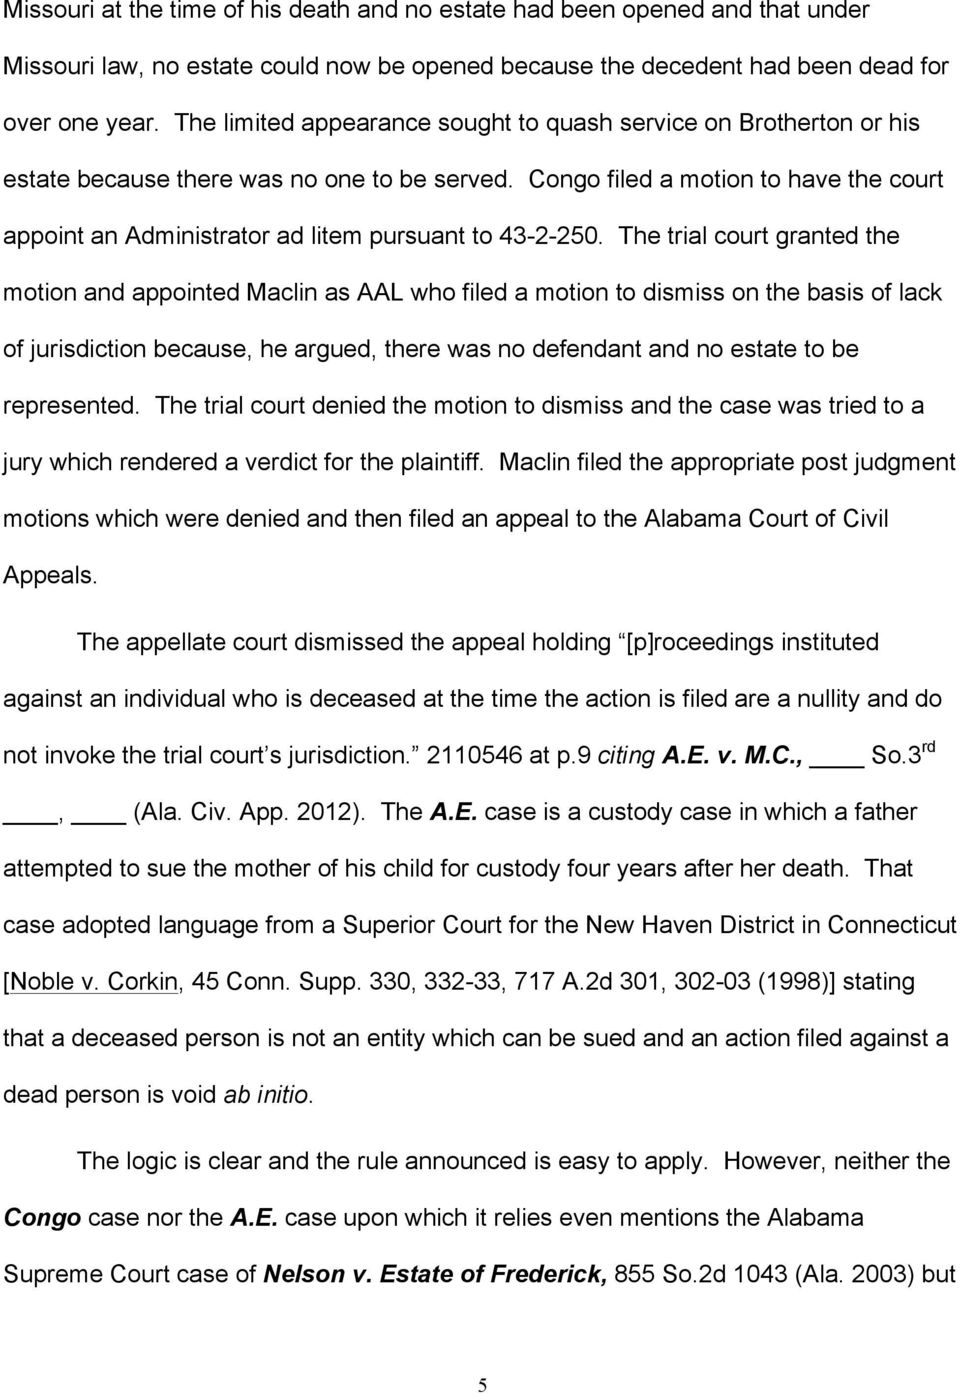 Congo filed a motion to have the court appoint an Administrator ad litem pursuant to 43-2-250.